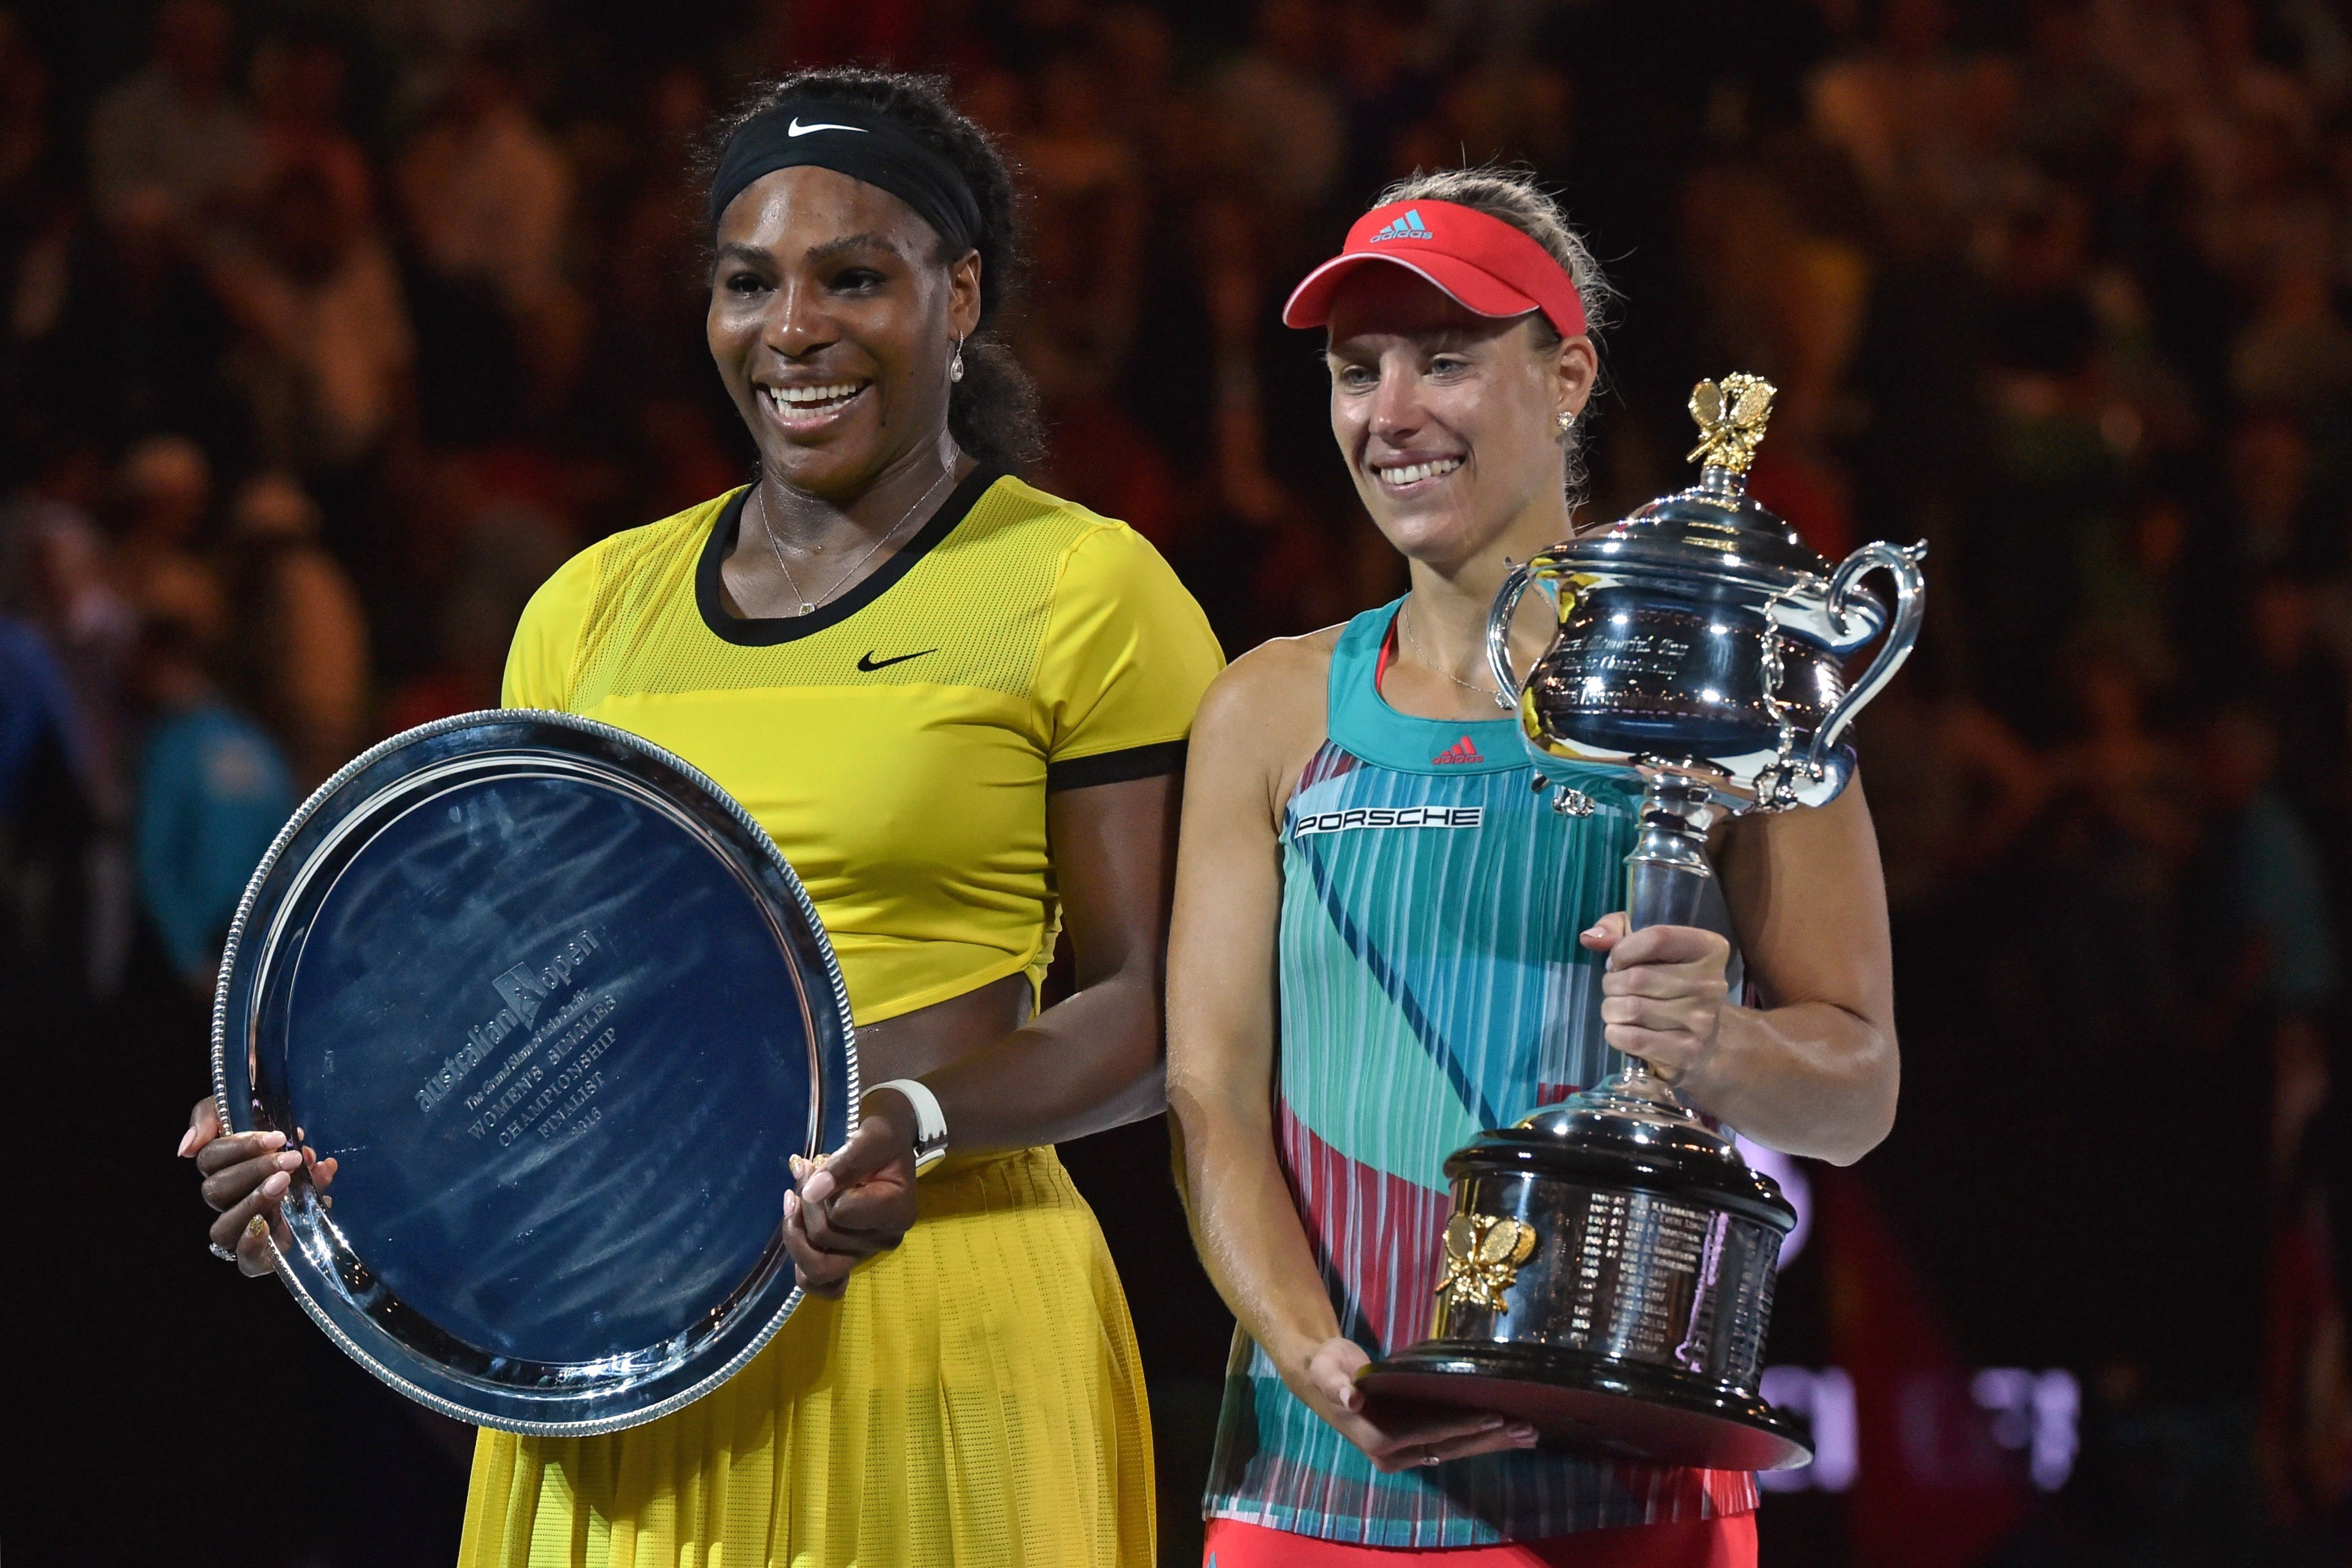 Angelique Kerber of Germany (R) holds the winner's trophy during the awards ceremony following her victory over Serena Williams of the US (L) in their women's singles final match on day 13 of the 2016 Australian Open tennis tournament in Melbourne on January 30, 2016. AFP PHOTO / PAUL CROCK -- IMAGE RESTRICTED TO EDITORIAL USE - STRICTLY NO COMMERCIAL USE / AFP / PAUL CROCK        (Photo credit should read PAUL CROCK/AFP/Getty Images)